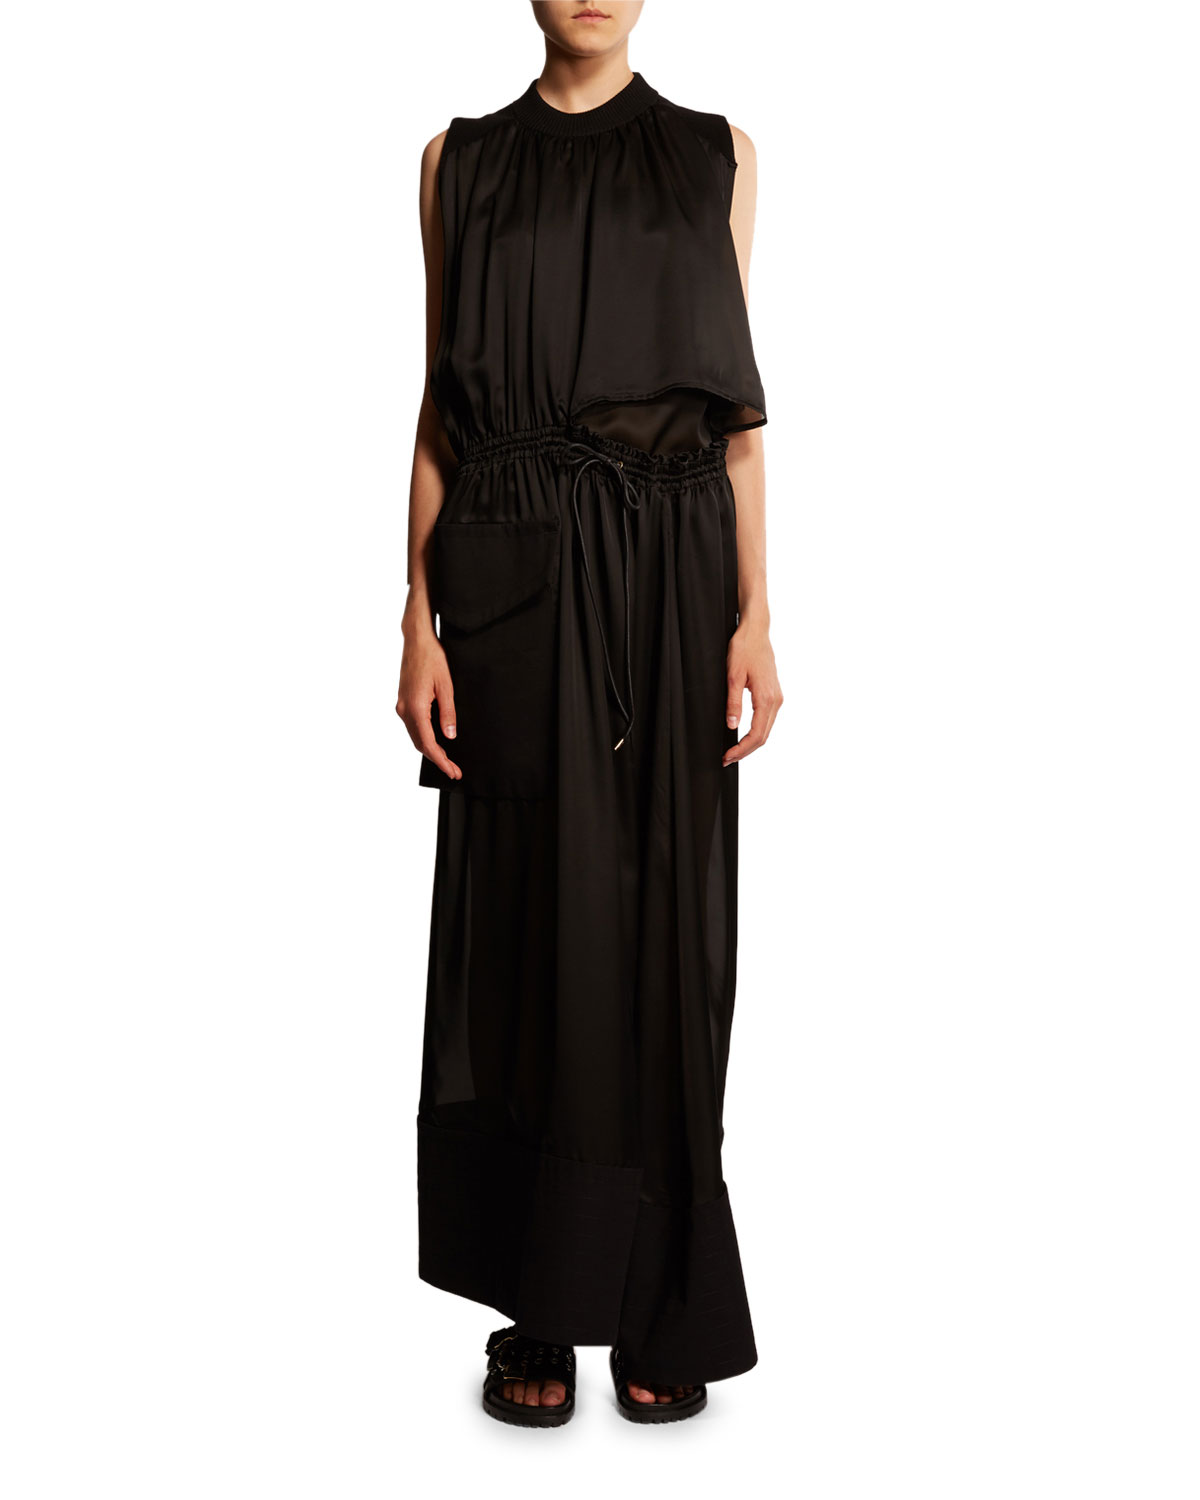 Sacai Dresses RUCHED CUTOUT MAXI DRESS